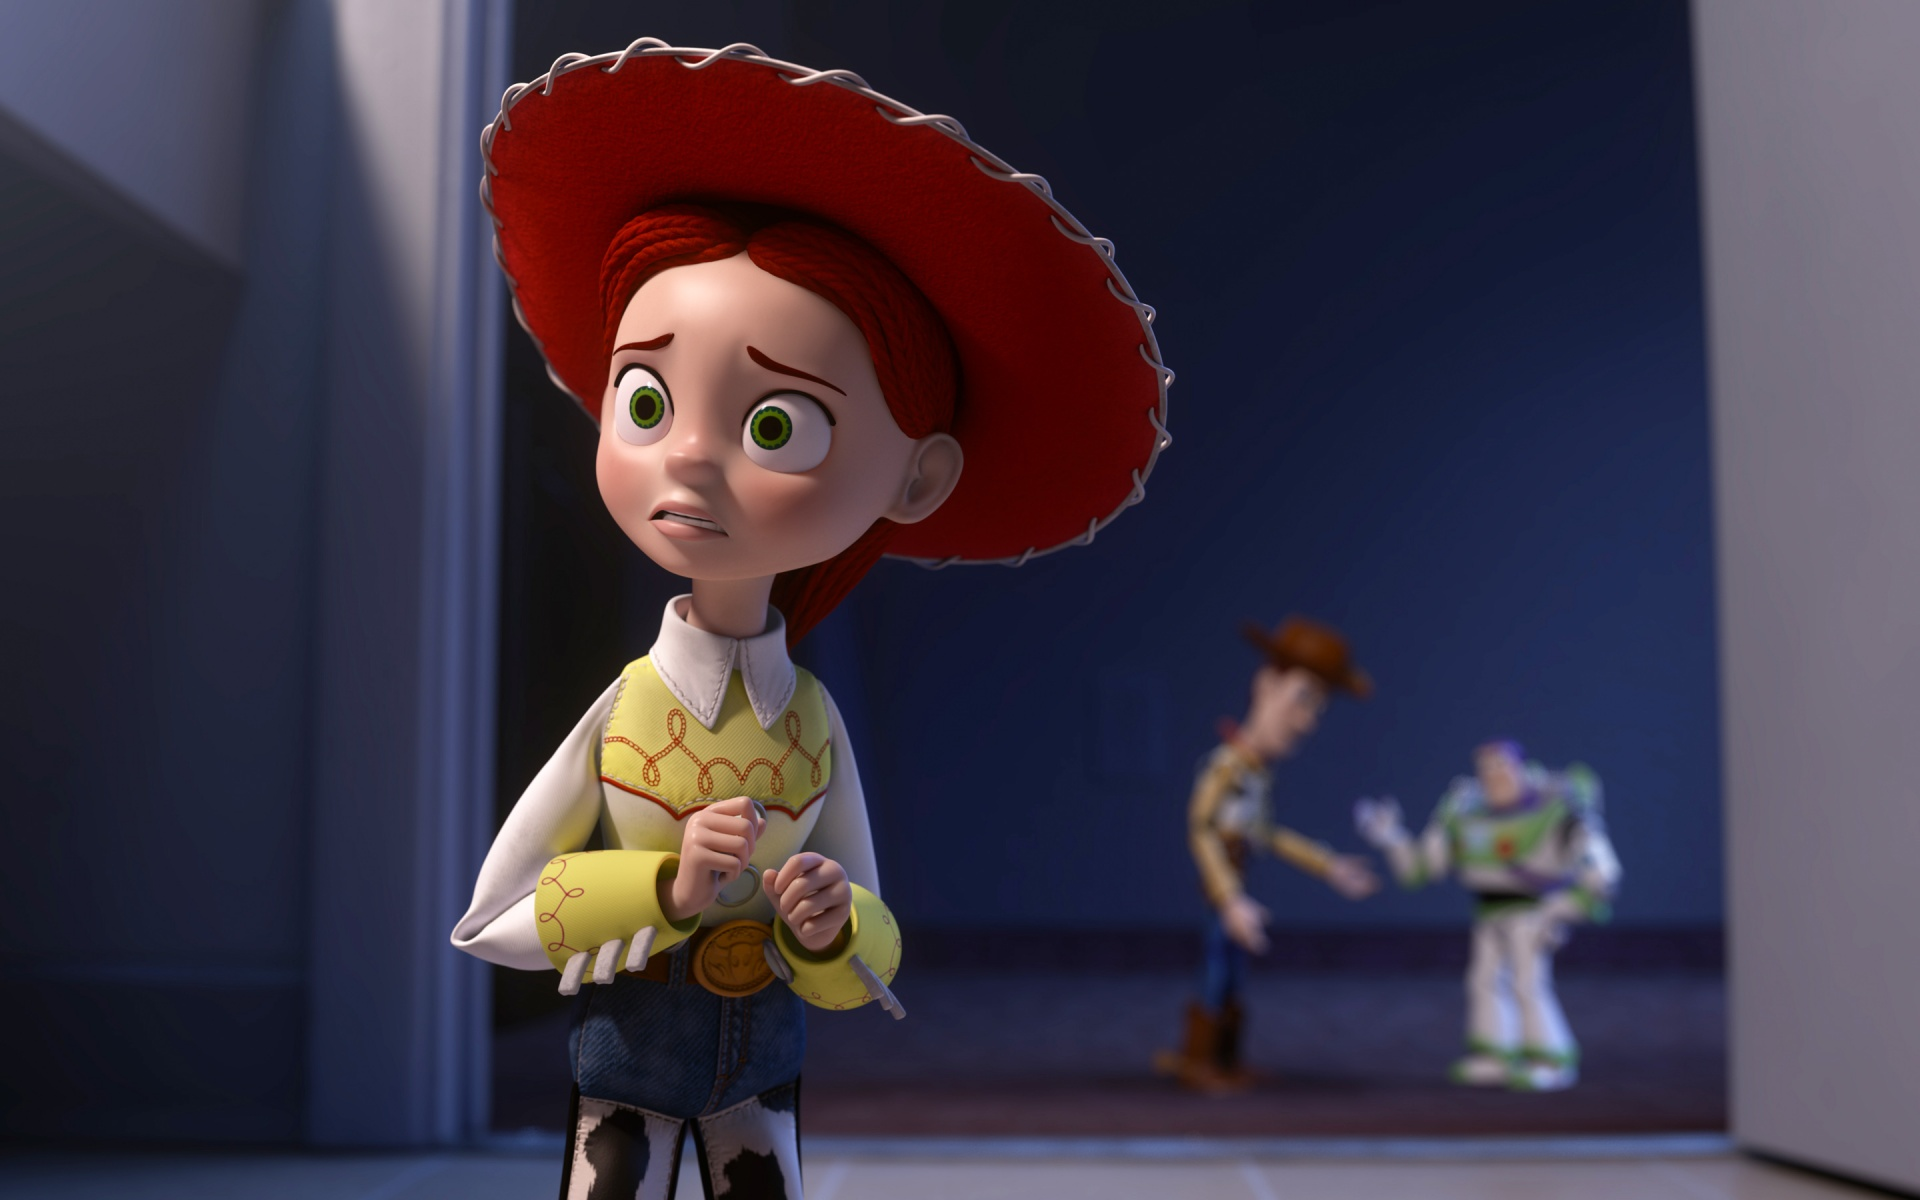 Jessie Toy Story of Terror Wallpapers HD Wallpapers 1920x1200